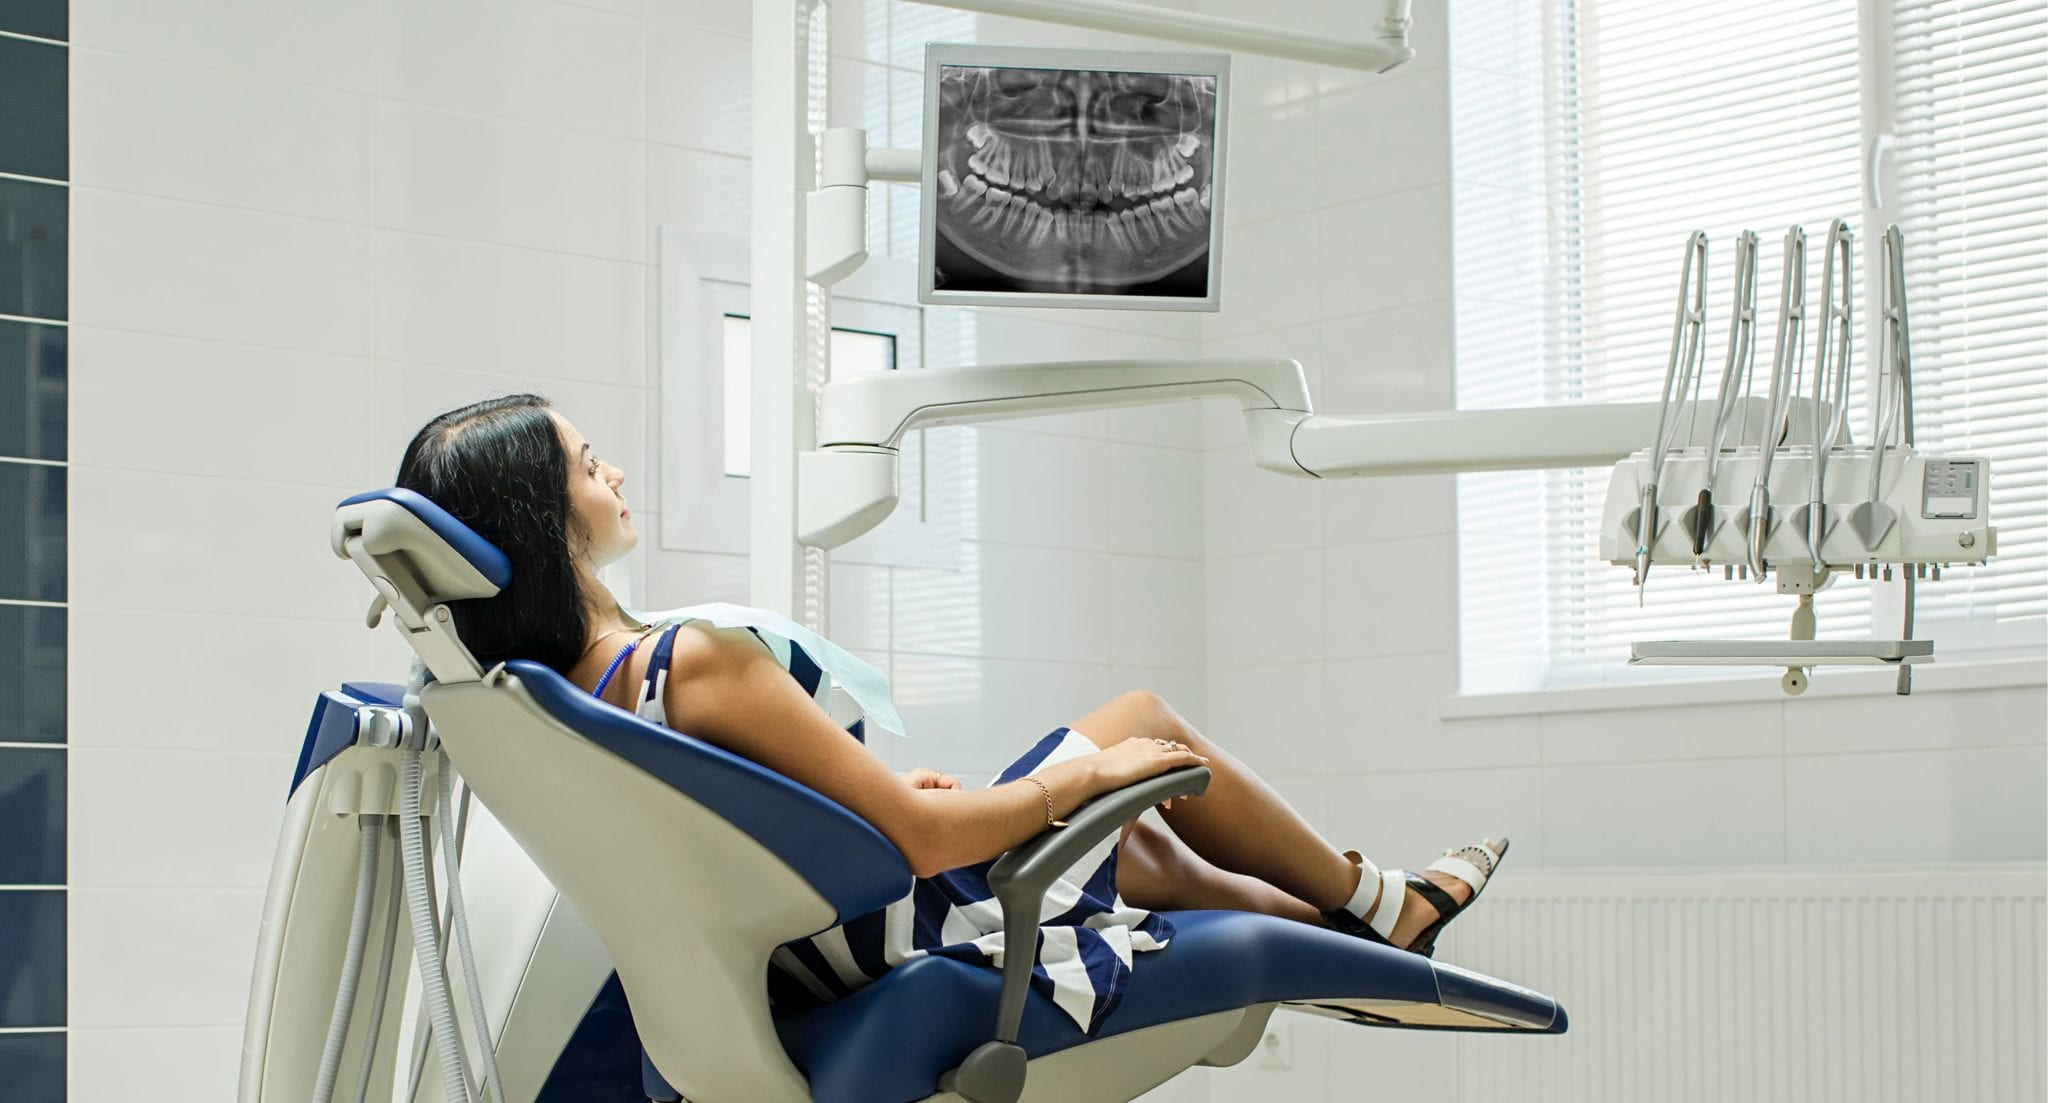 Patient sitting on dental chair wearing dental bib